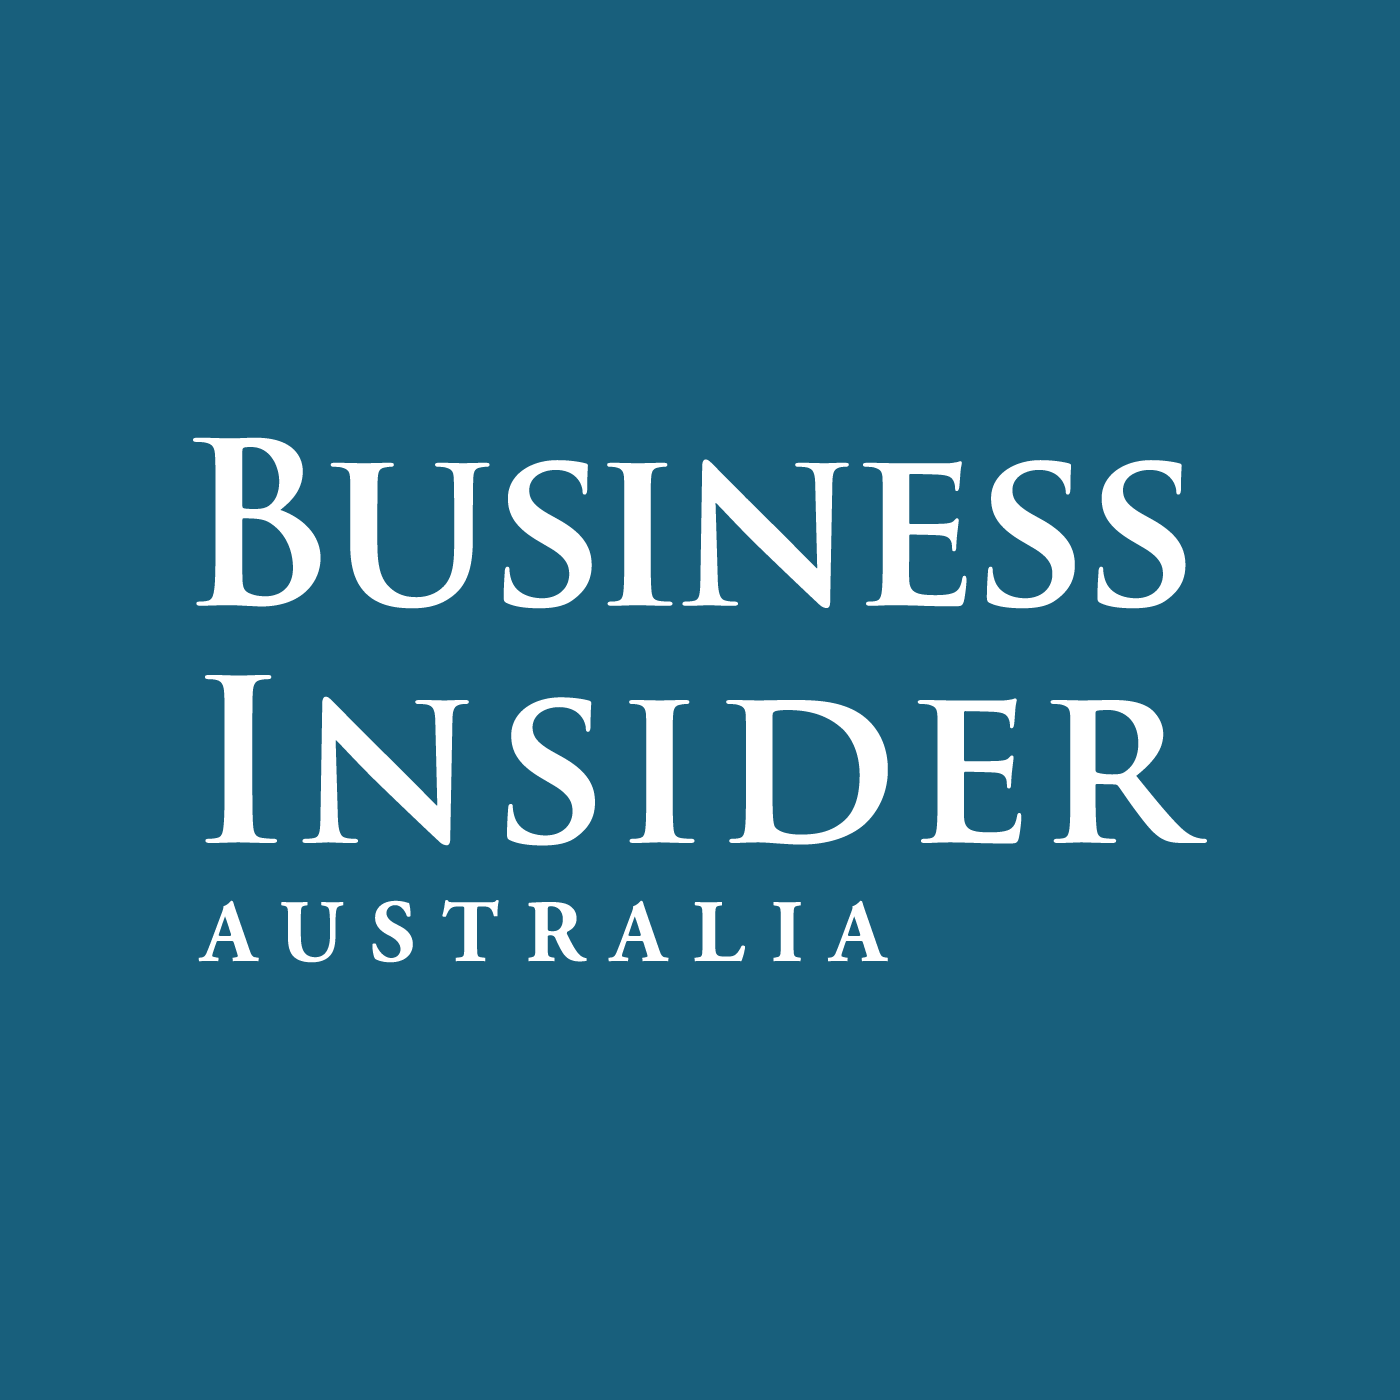 Devils and details by Business Insider Australia show art